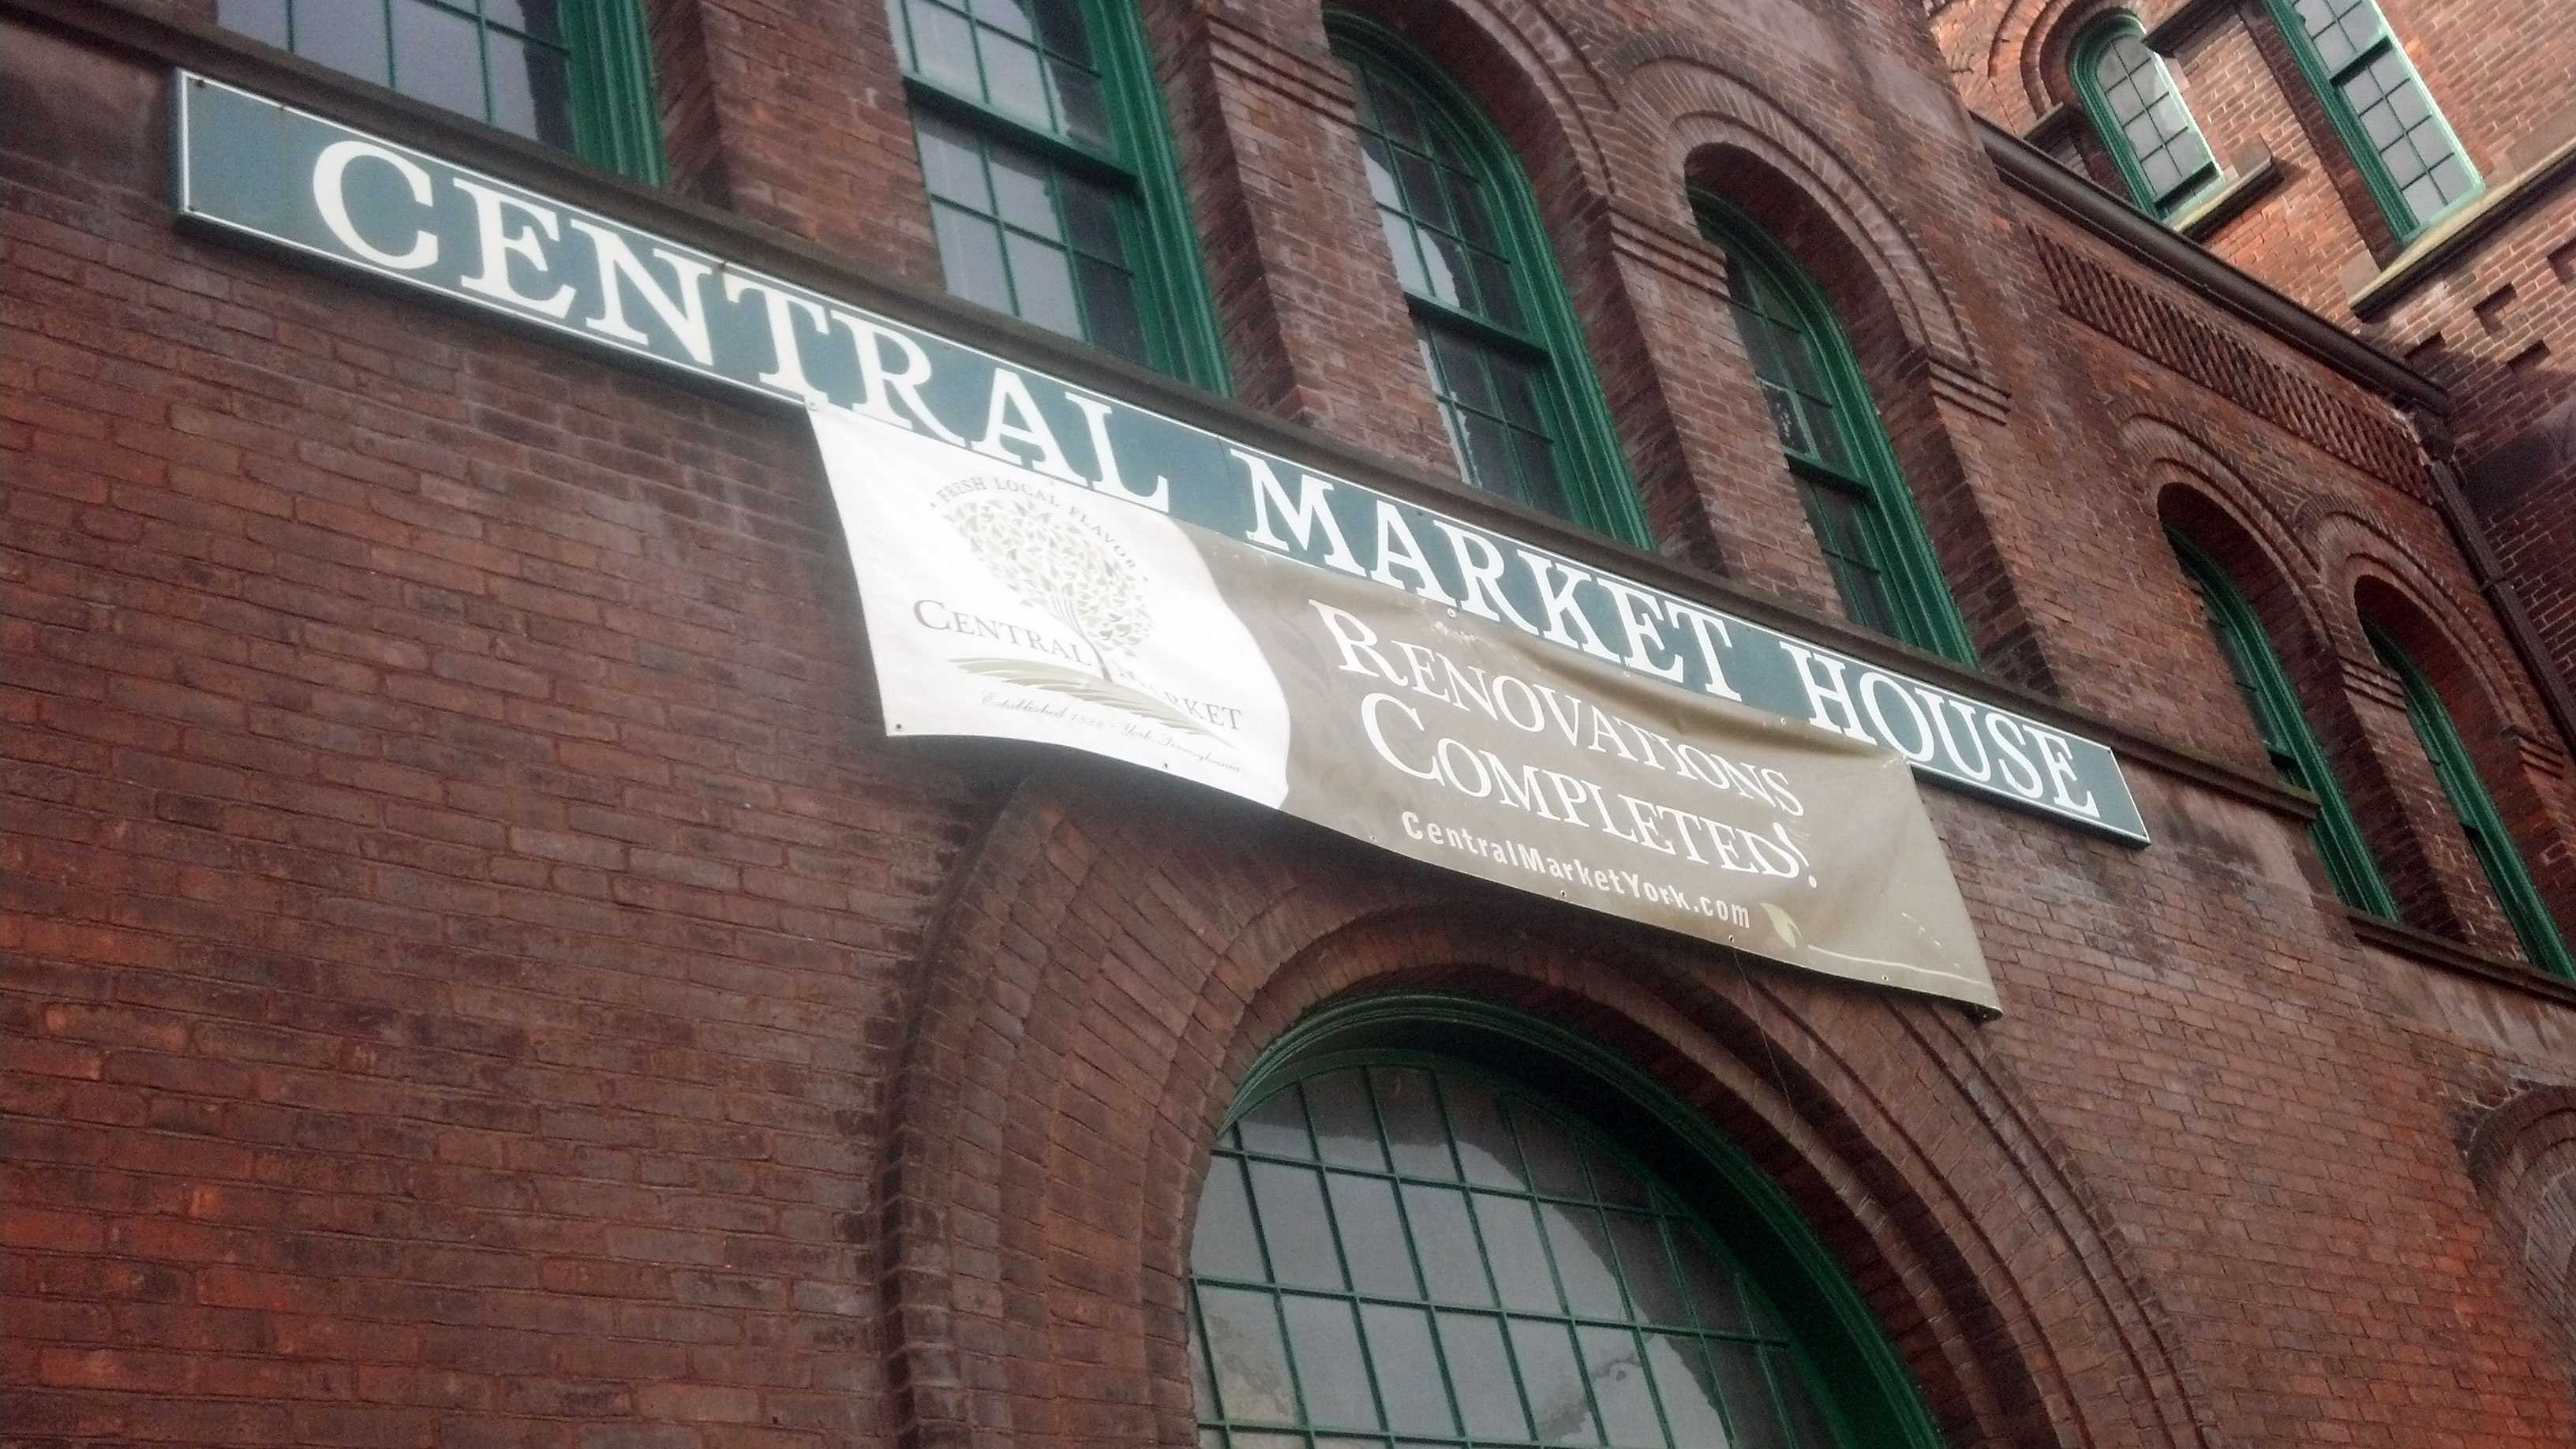 York's Central Market is celebrating its 125thanniversary.